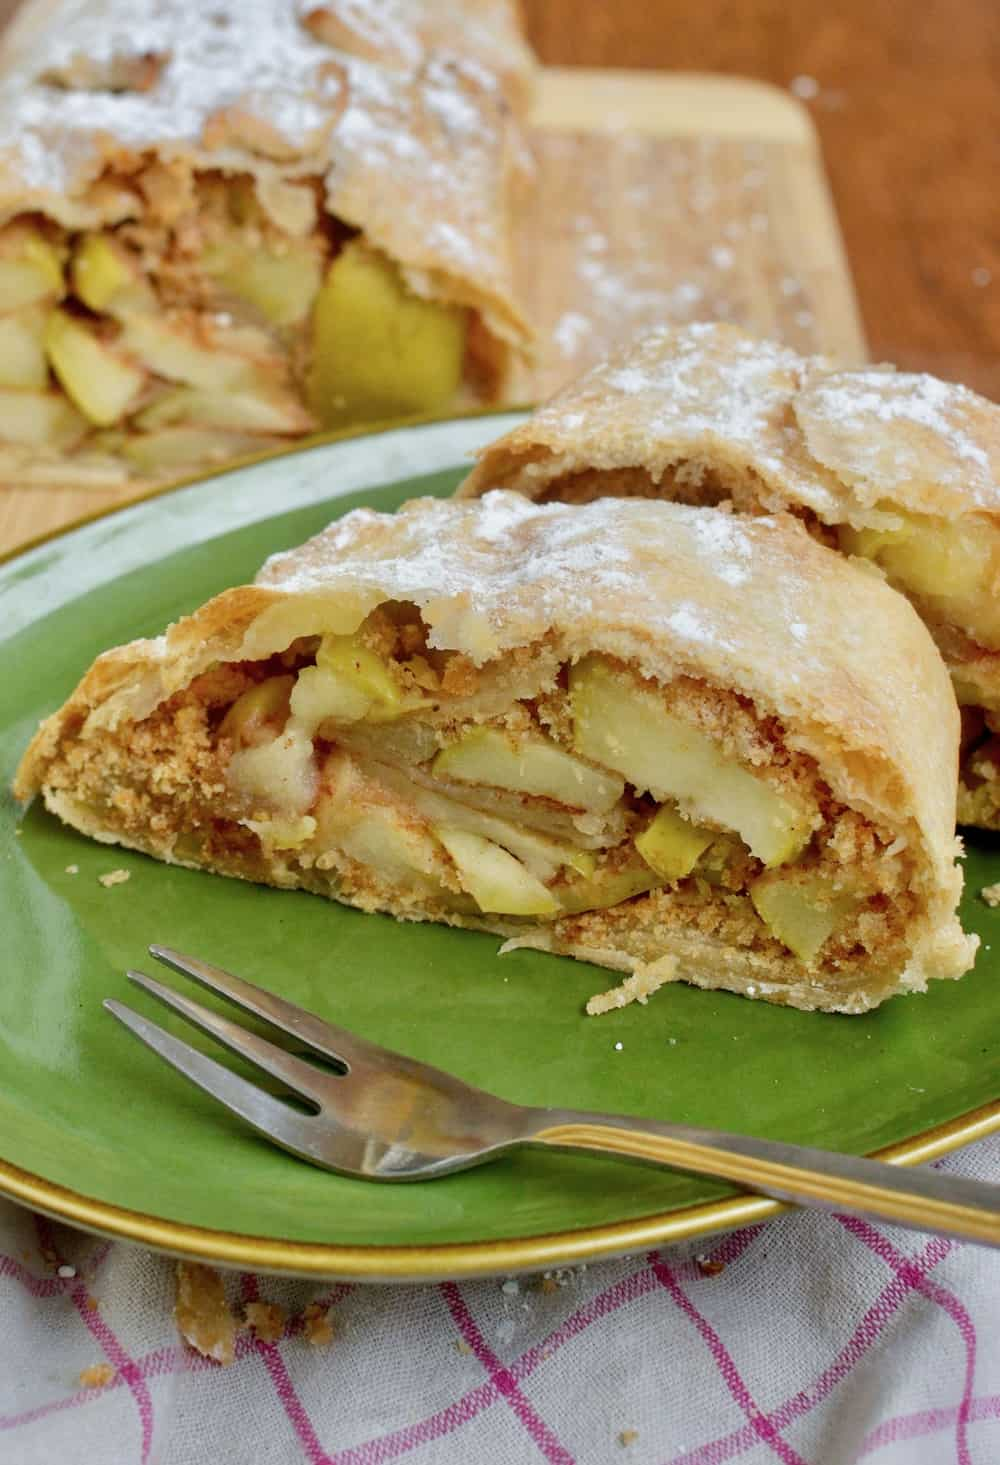 A slice of baked apple strudel, showing the filling of apples and breadcrumbs and a crisp crust.